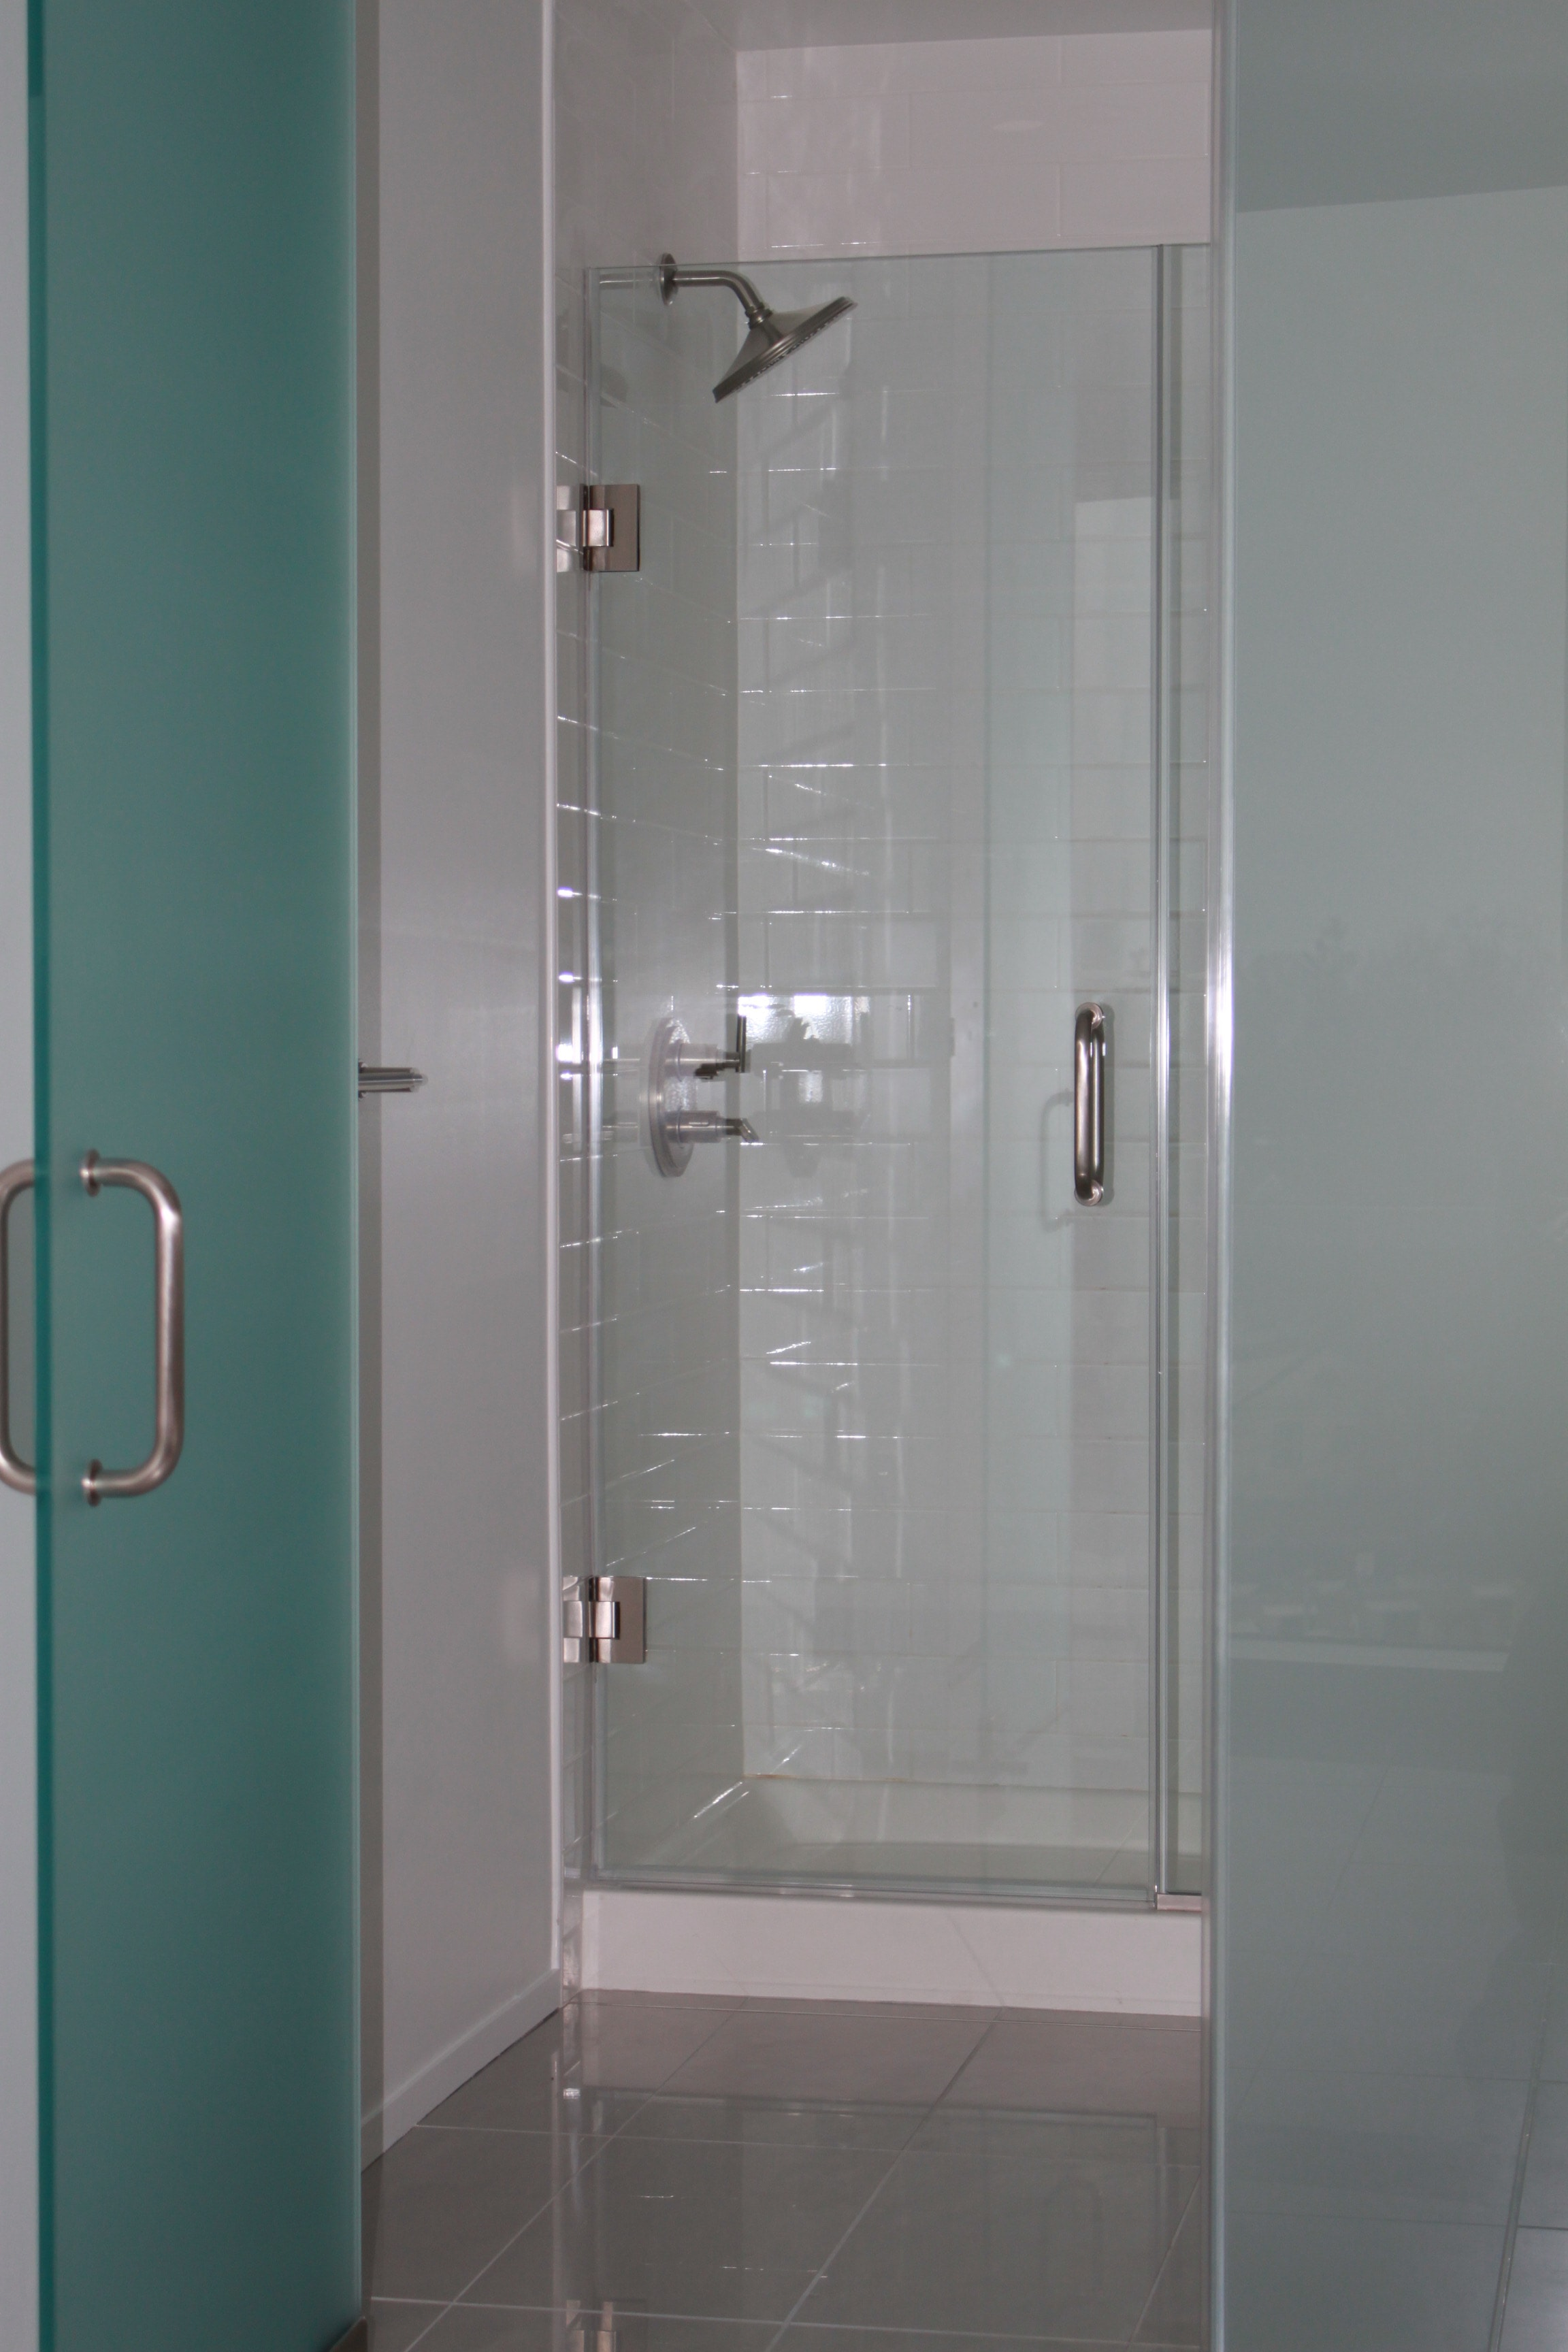 Bathroom Enclosure & Frameless Shower Door Inside-min